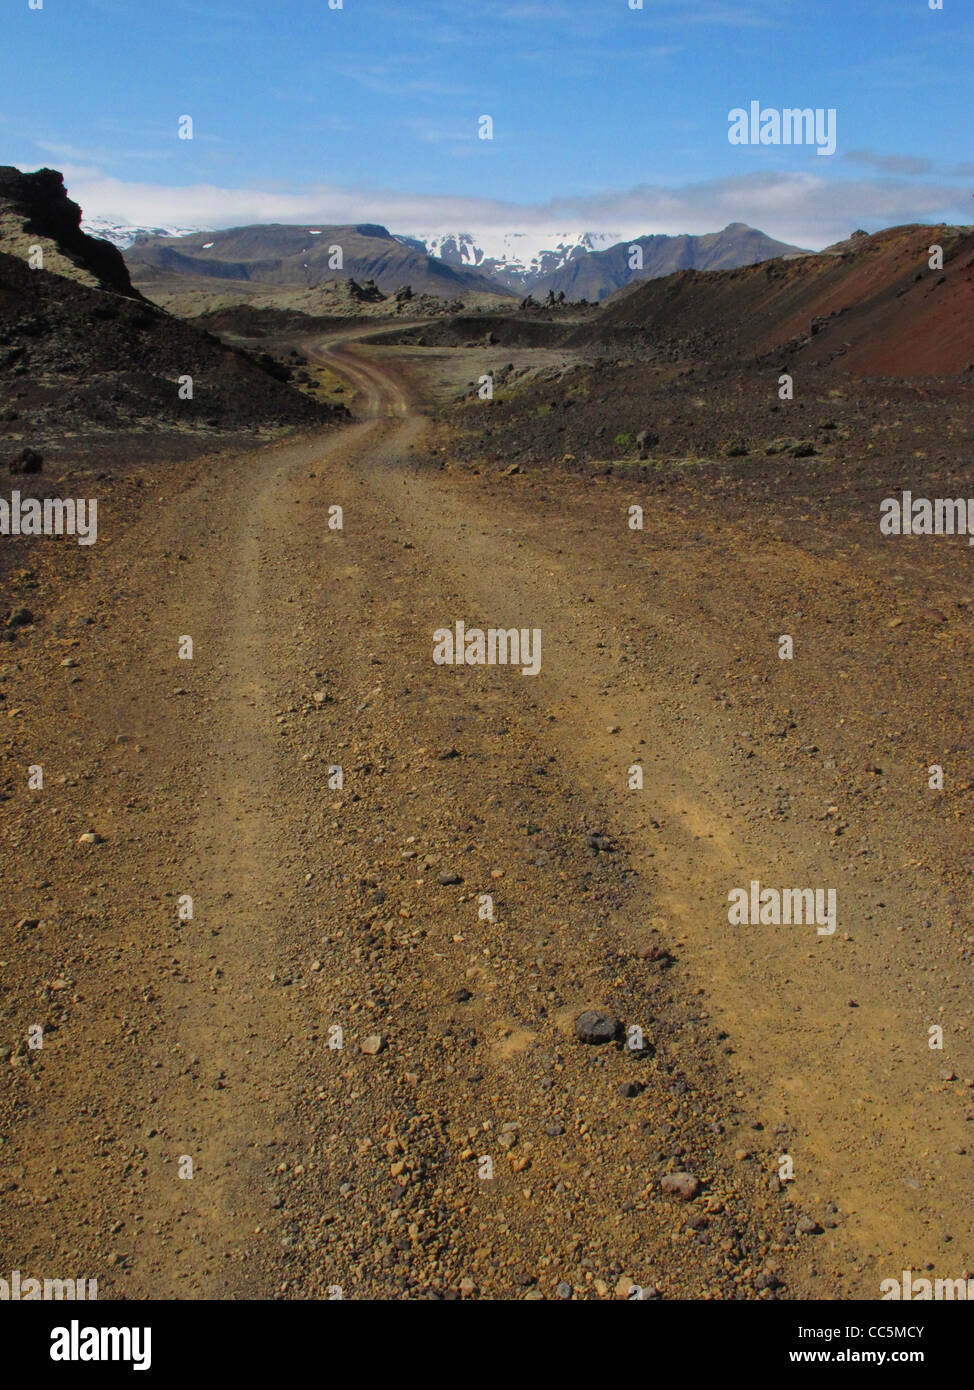 Gravel road 558 to the Berserkjahraun lava field. Between Grundafjordur and Stykkisholmur. Western Iceland. - Stock Image